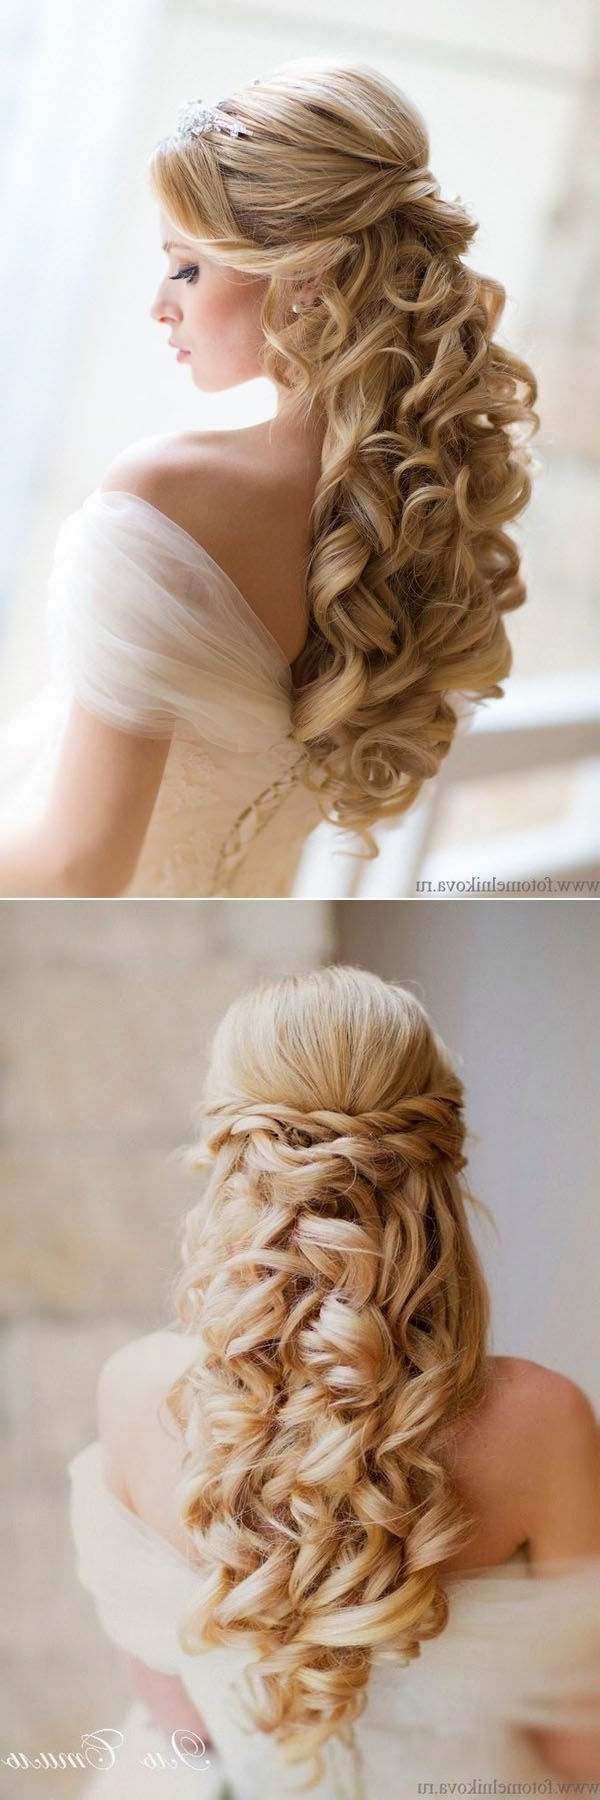 Famous Hair Half Up Half Down Wedding Hairstyles Long Curly For 20 Awesome Half Up Half Down Wedding Hairstyle Ideas (View 6 of 15)